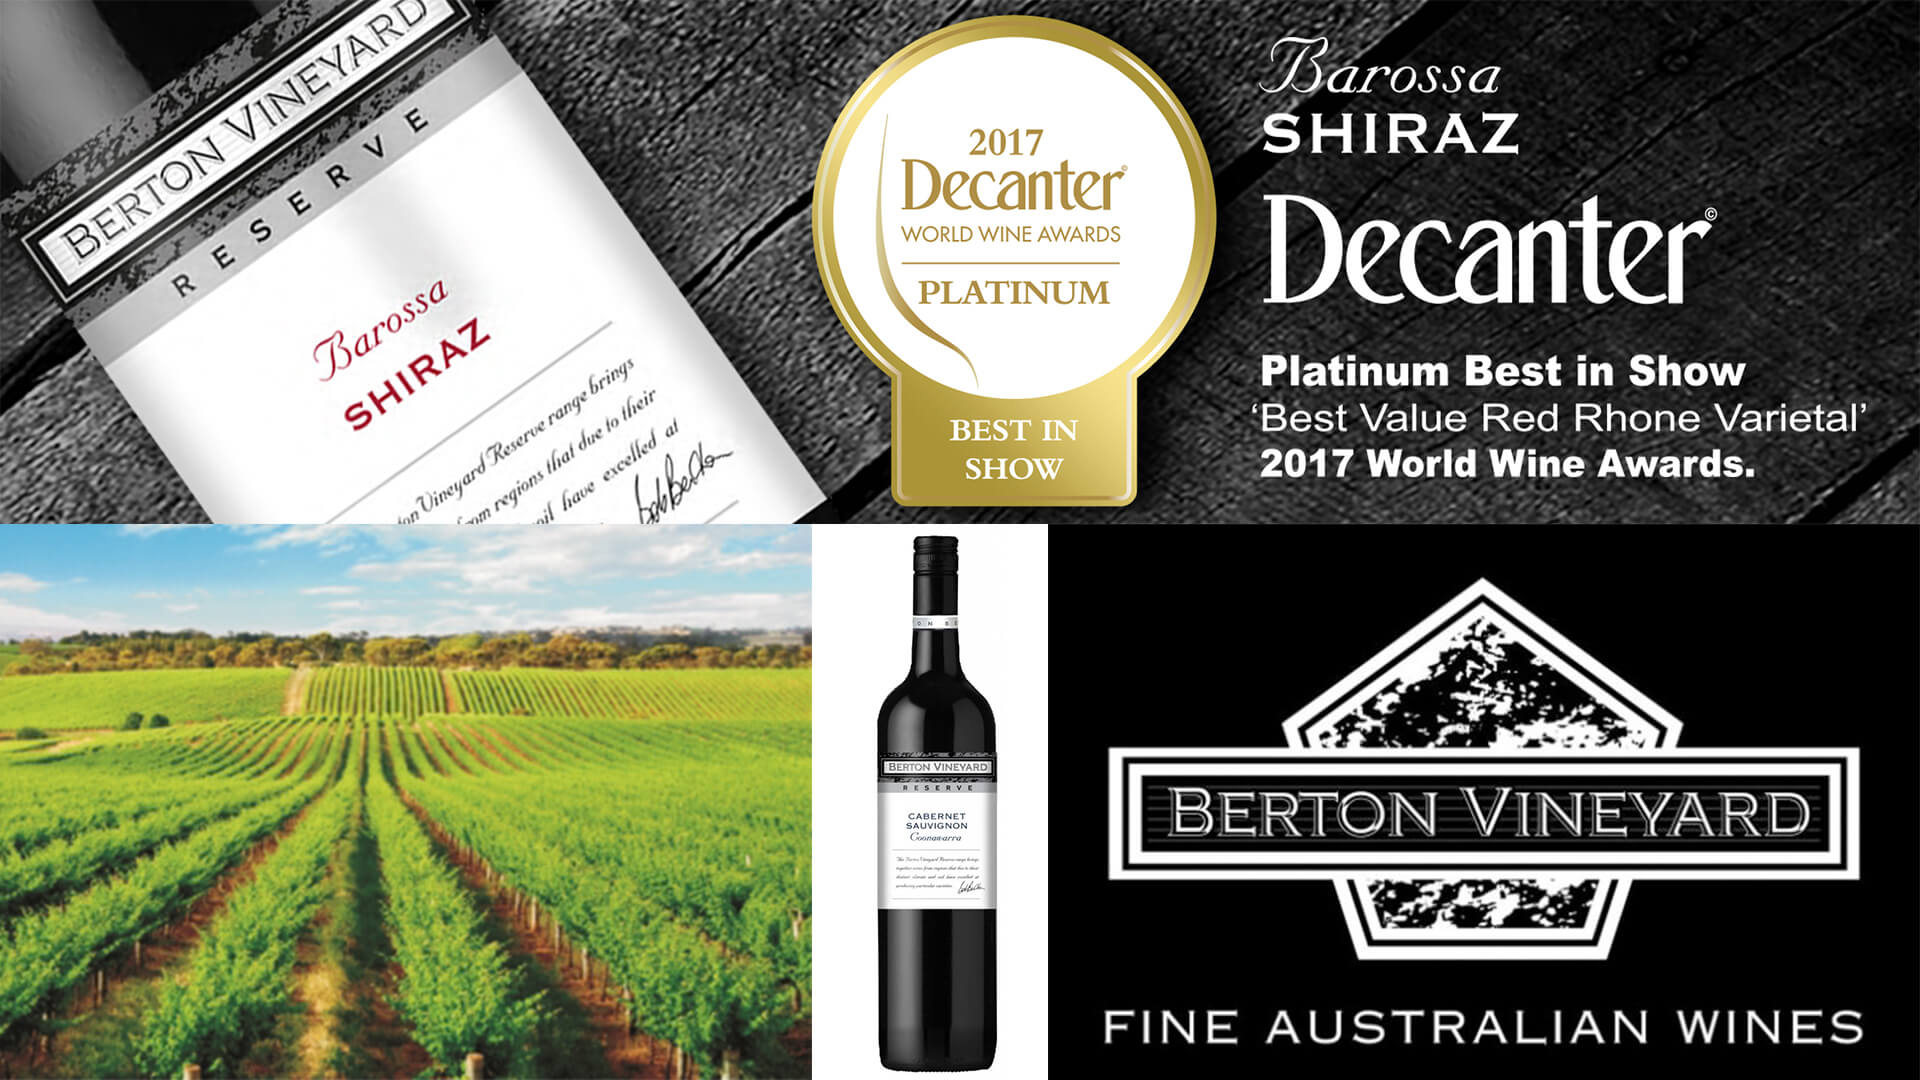 Winemaker Dinner with Bob Berton of Berton Vineyards of Eden Valley